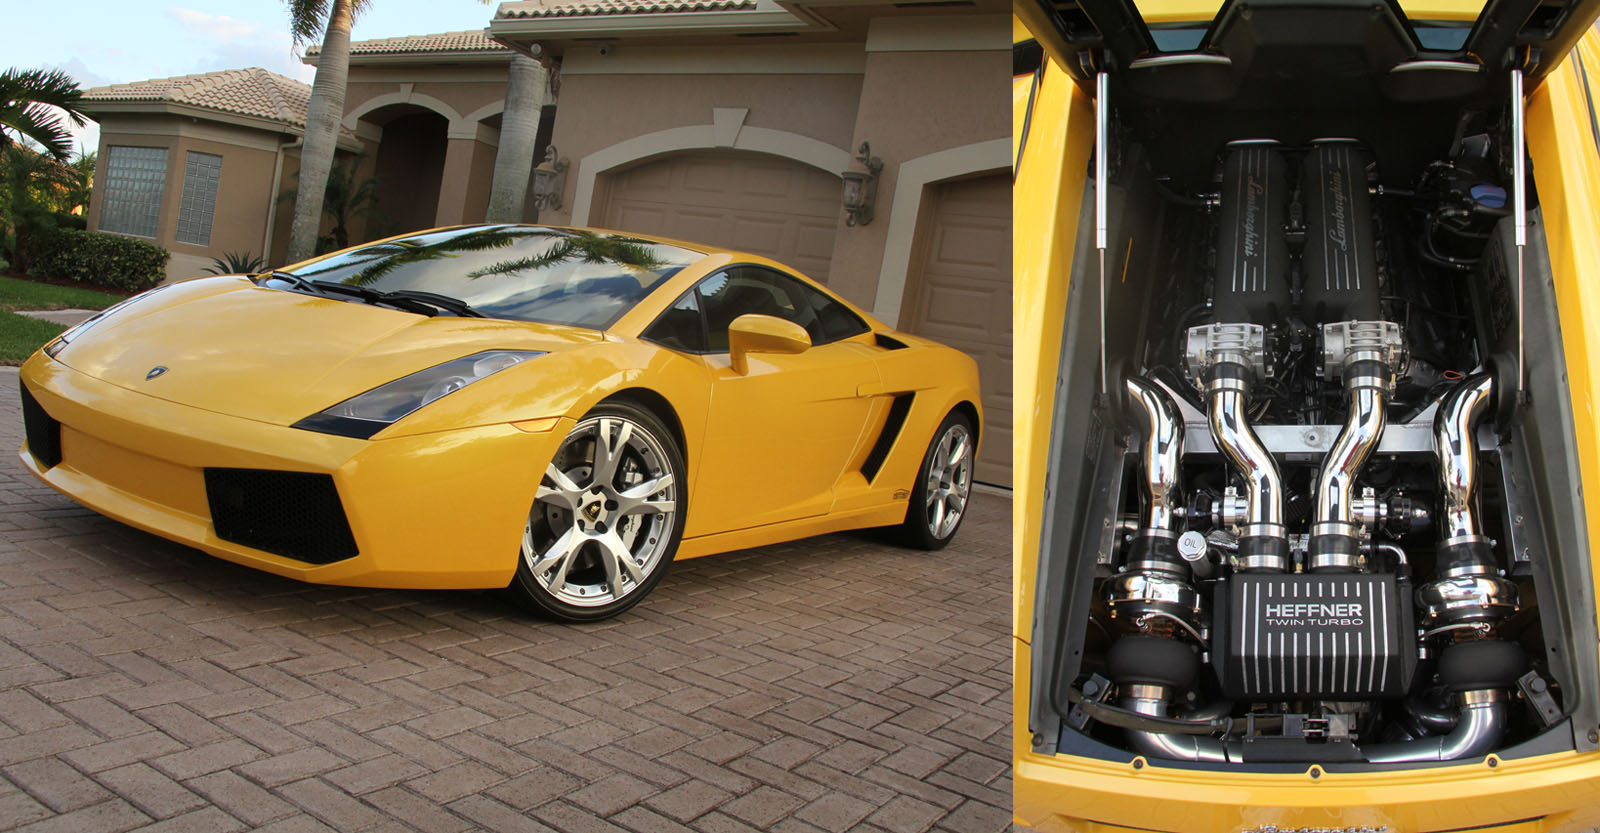 2006 Lamborghini Gallardo Twin Turbo Heffner Bolt-on Kit